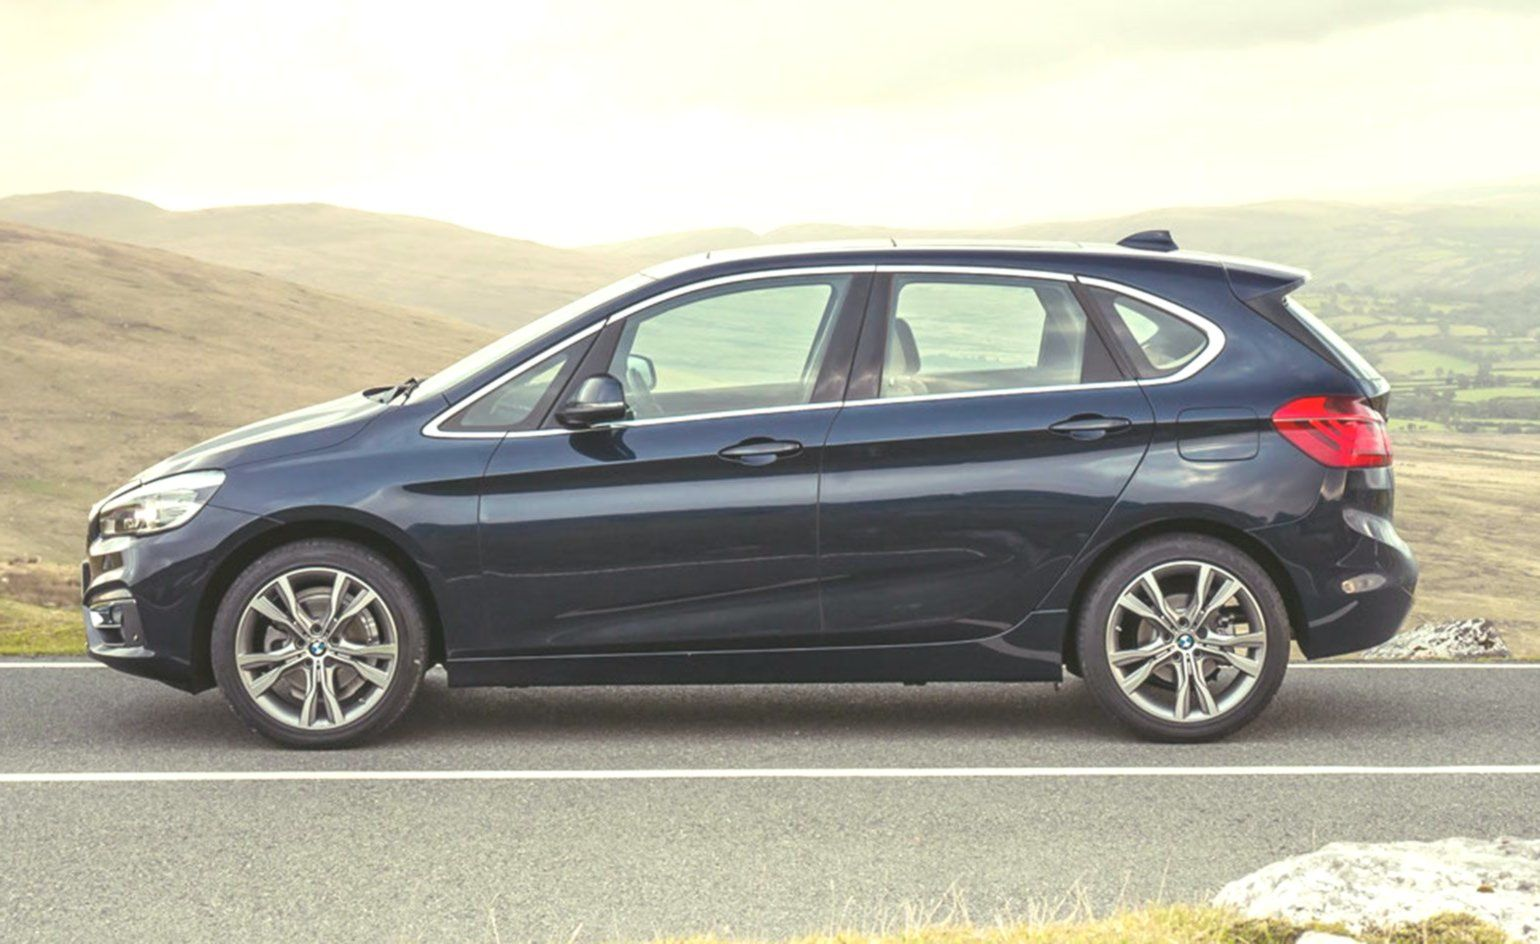 The Bmw 2 Series Active Tourer Offers A Pure Function In An Unconventional Package In 2020 Bmw 2 Pure Products Bmw